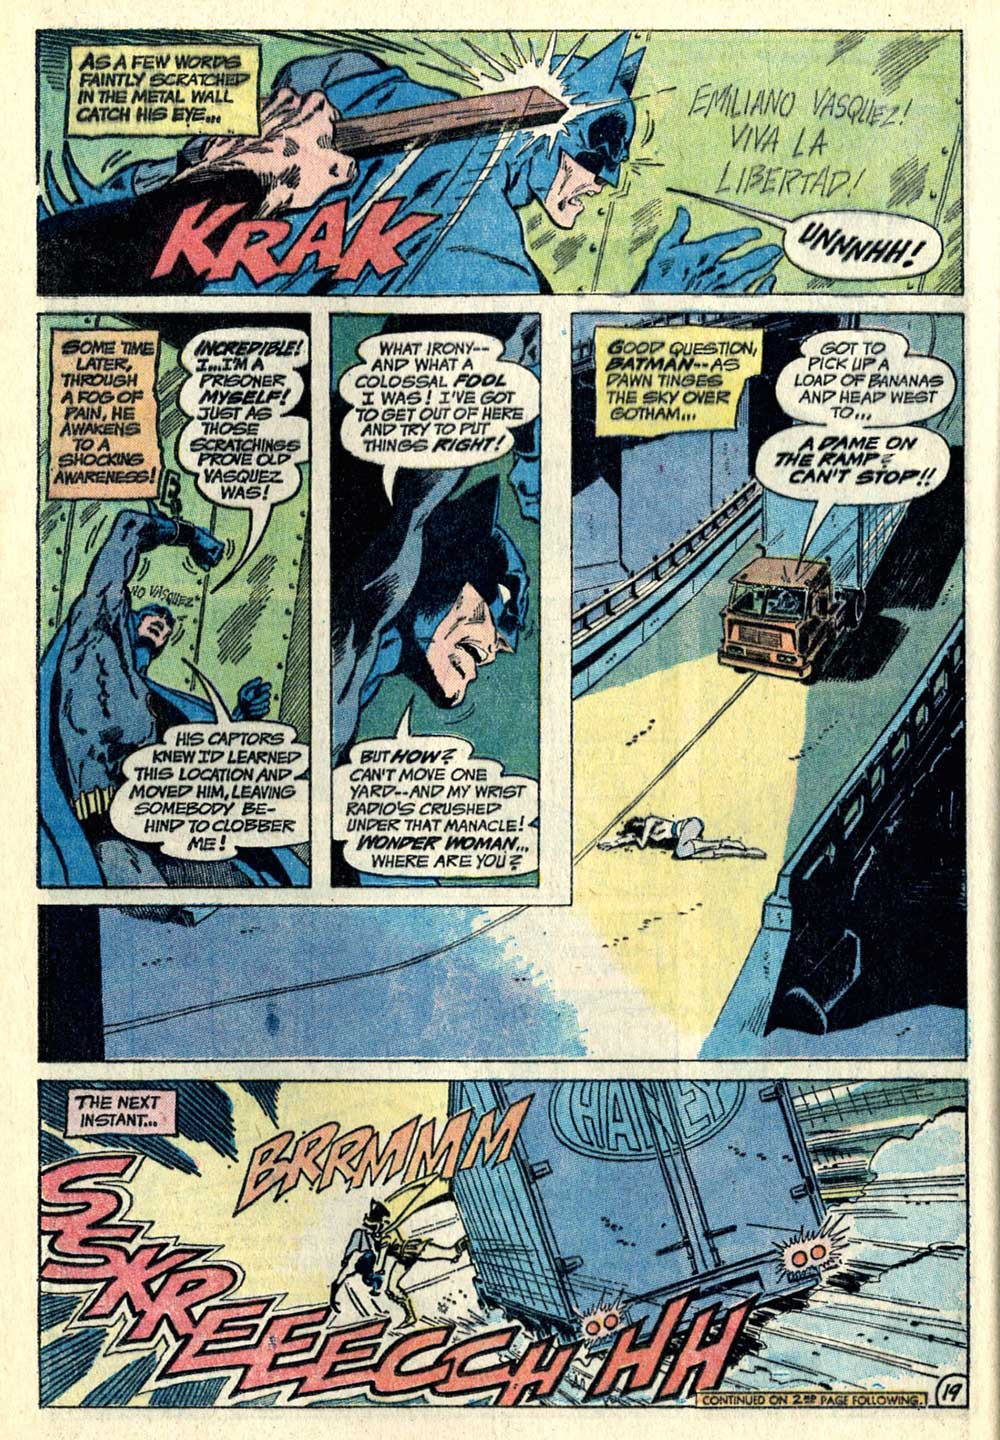 THE BRAVE AND THE BOLD #105 written by Bob Haney with art by Jim Aparo